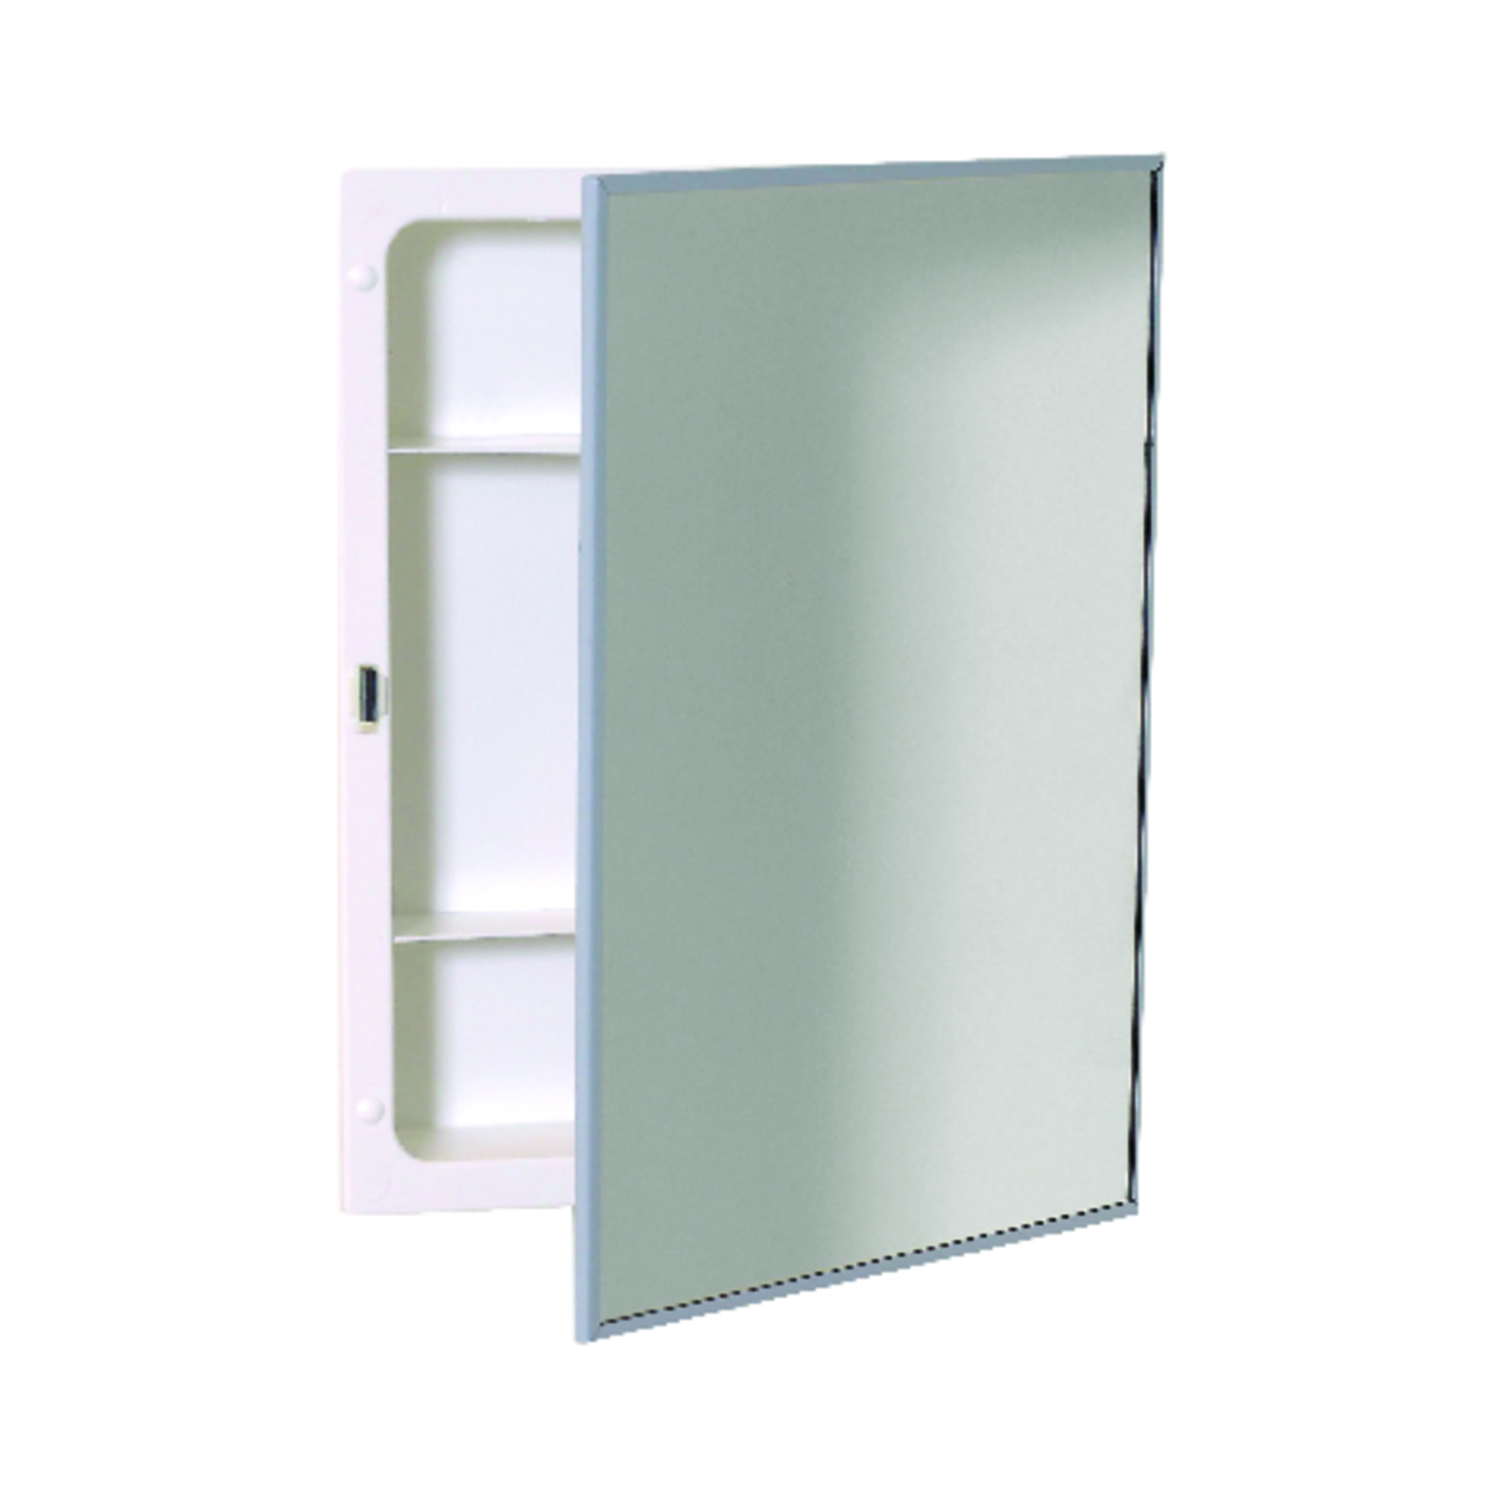 small resolution of zenith 20 1 8 in h x 16 1 8 in w x 3 25 in d rectangle medicine cabinet ace hardware